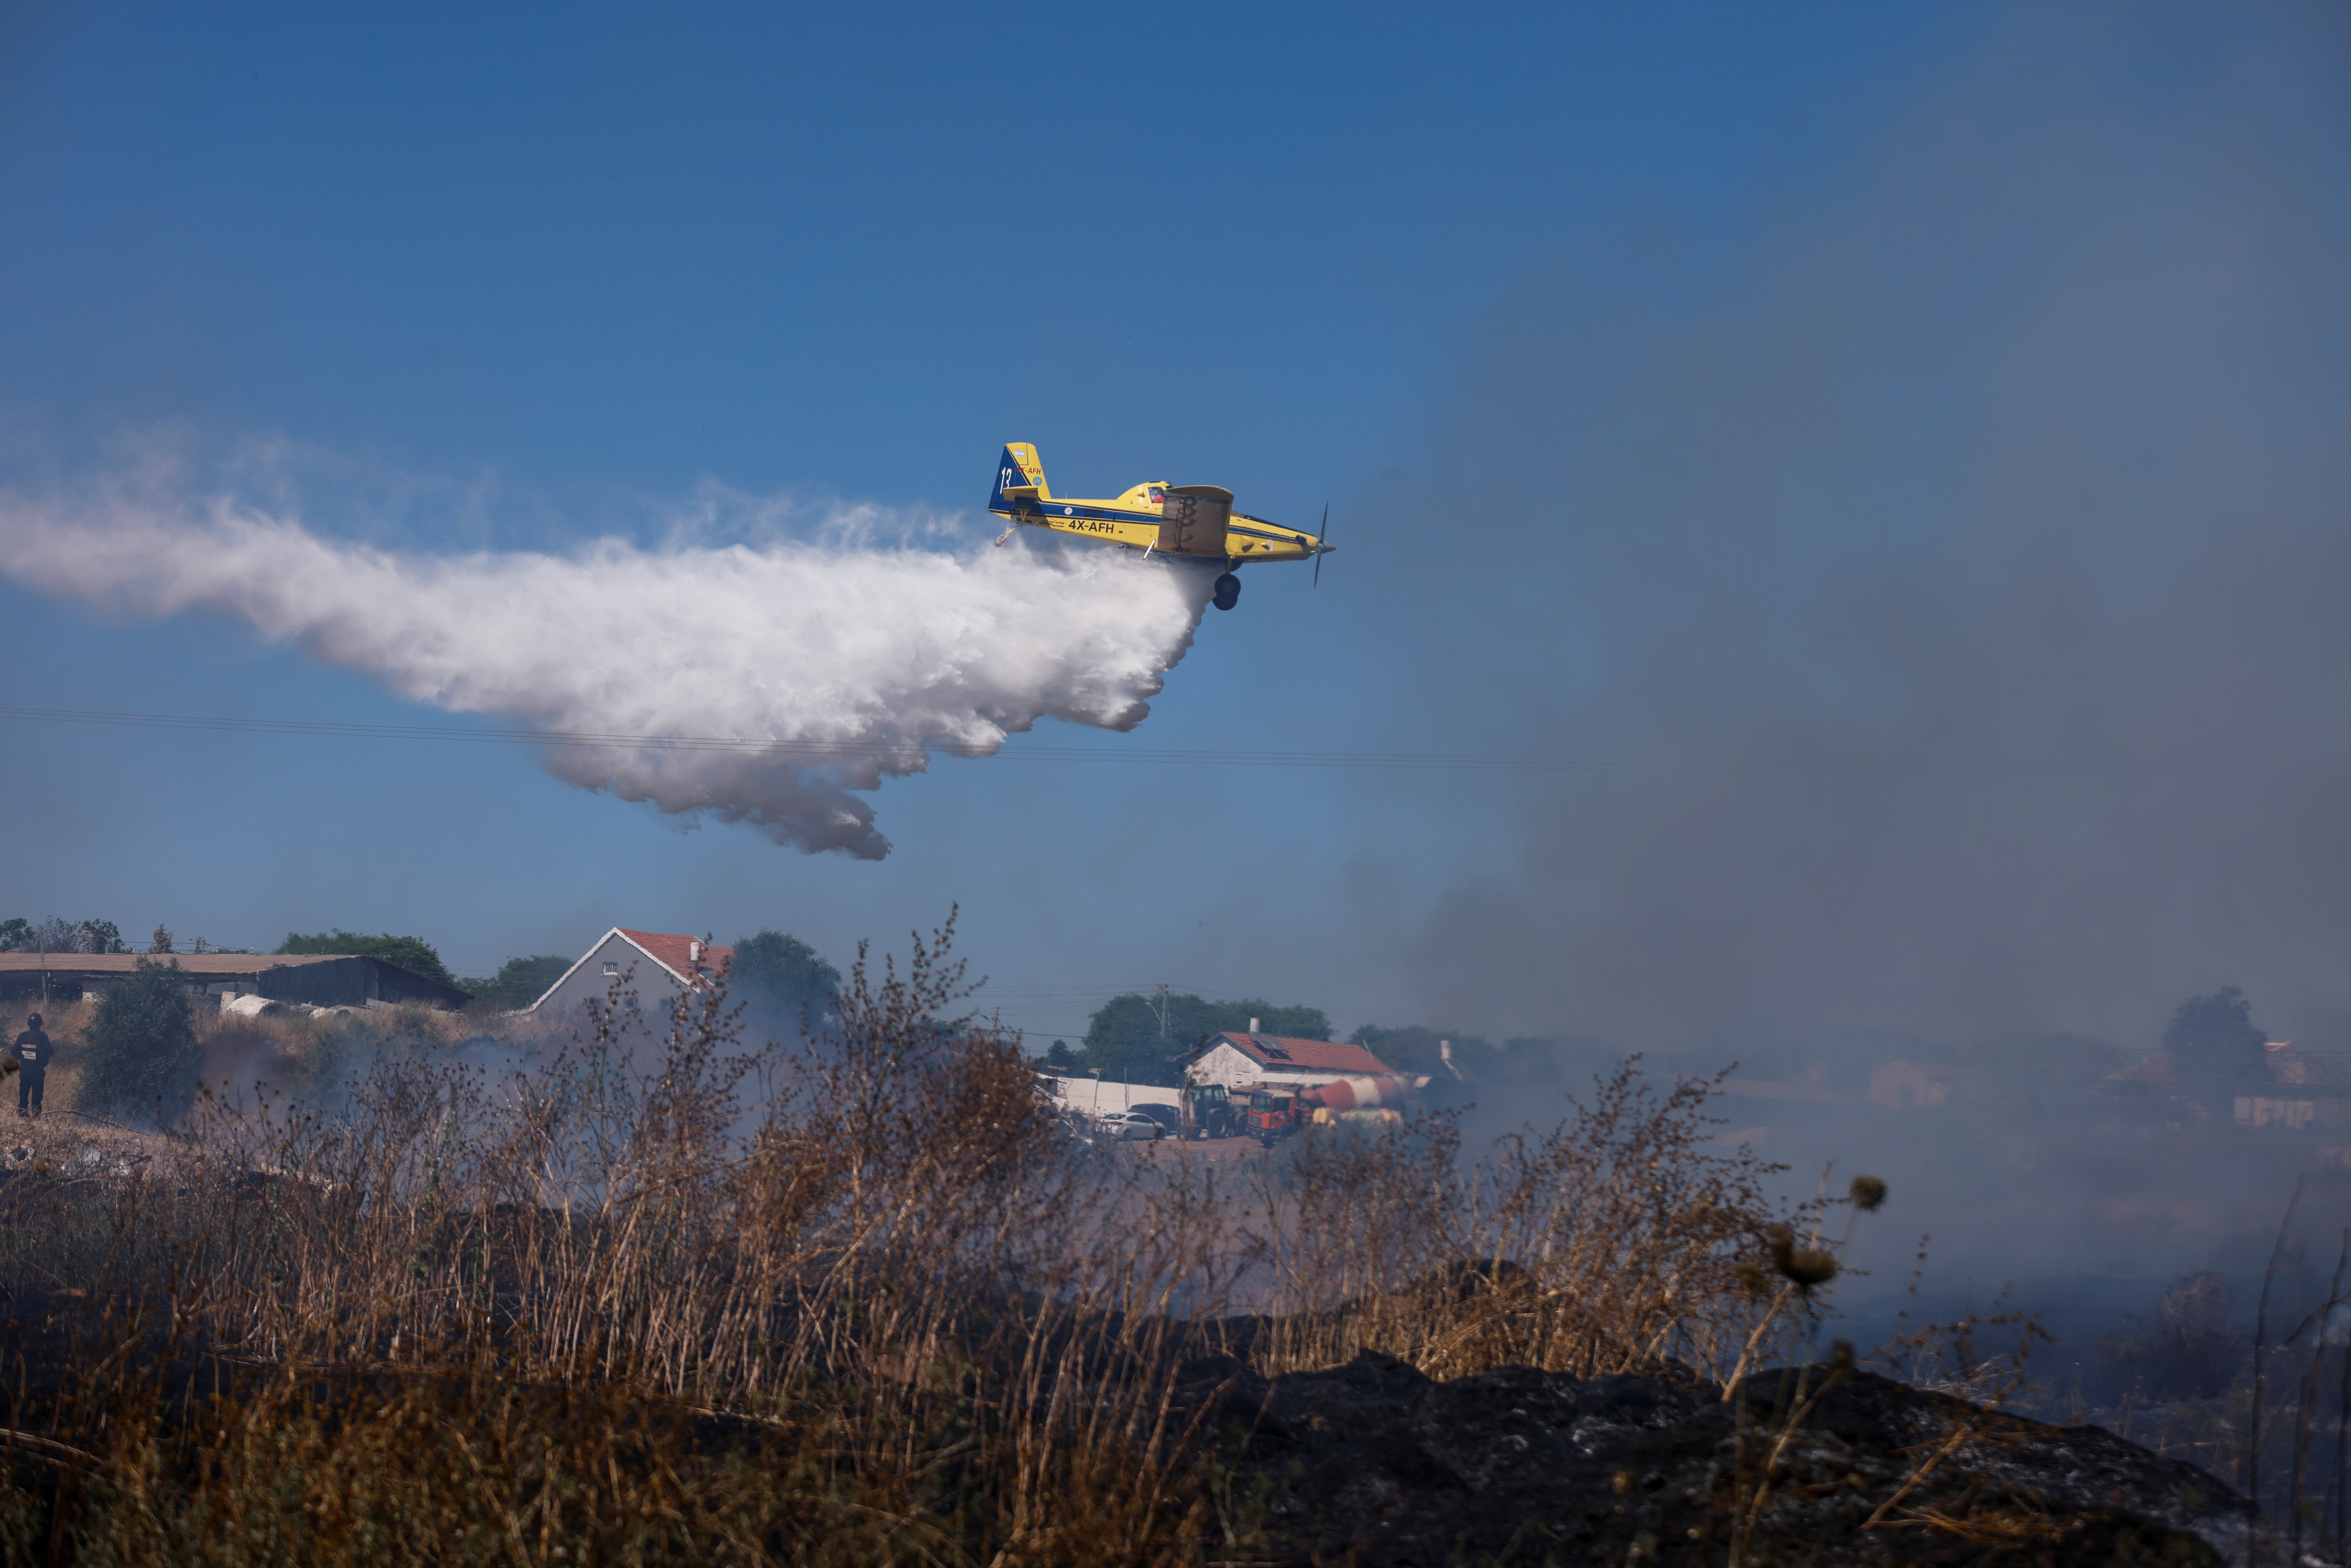 An Israeli firefighting plane extinguishes a fire on a field of wheat after a rocket launched from the Gaza Strip landed near homes in Moshav Zohar, Israel May 13, 2021. REUTERS/Amir Cohen